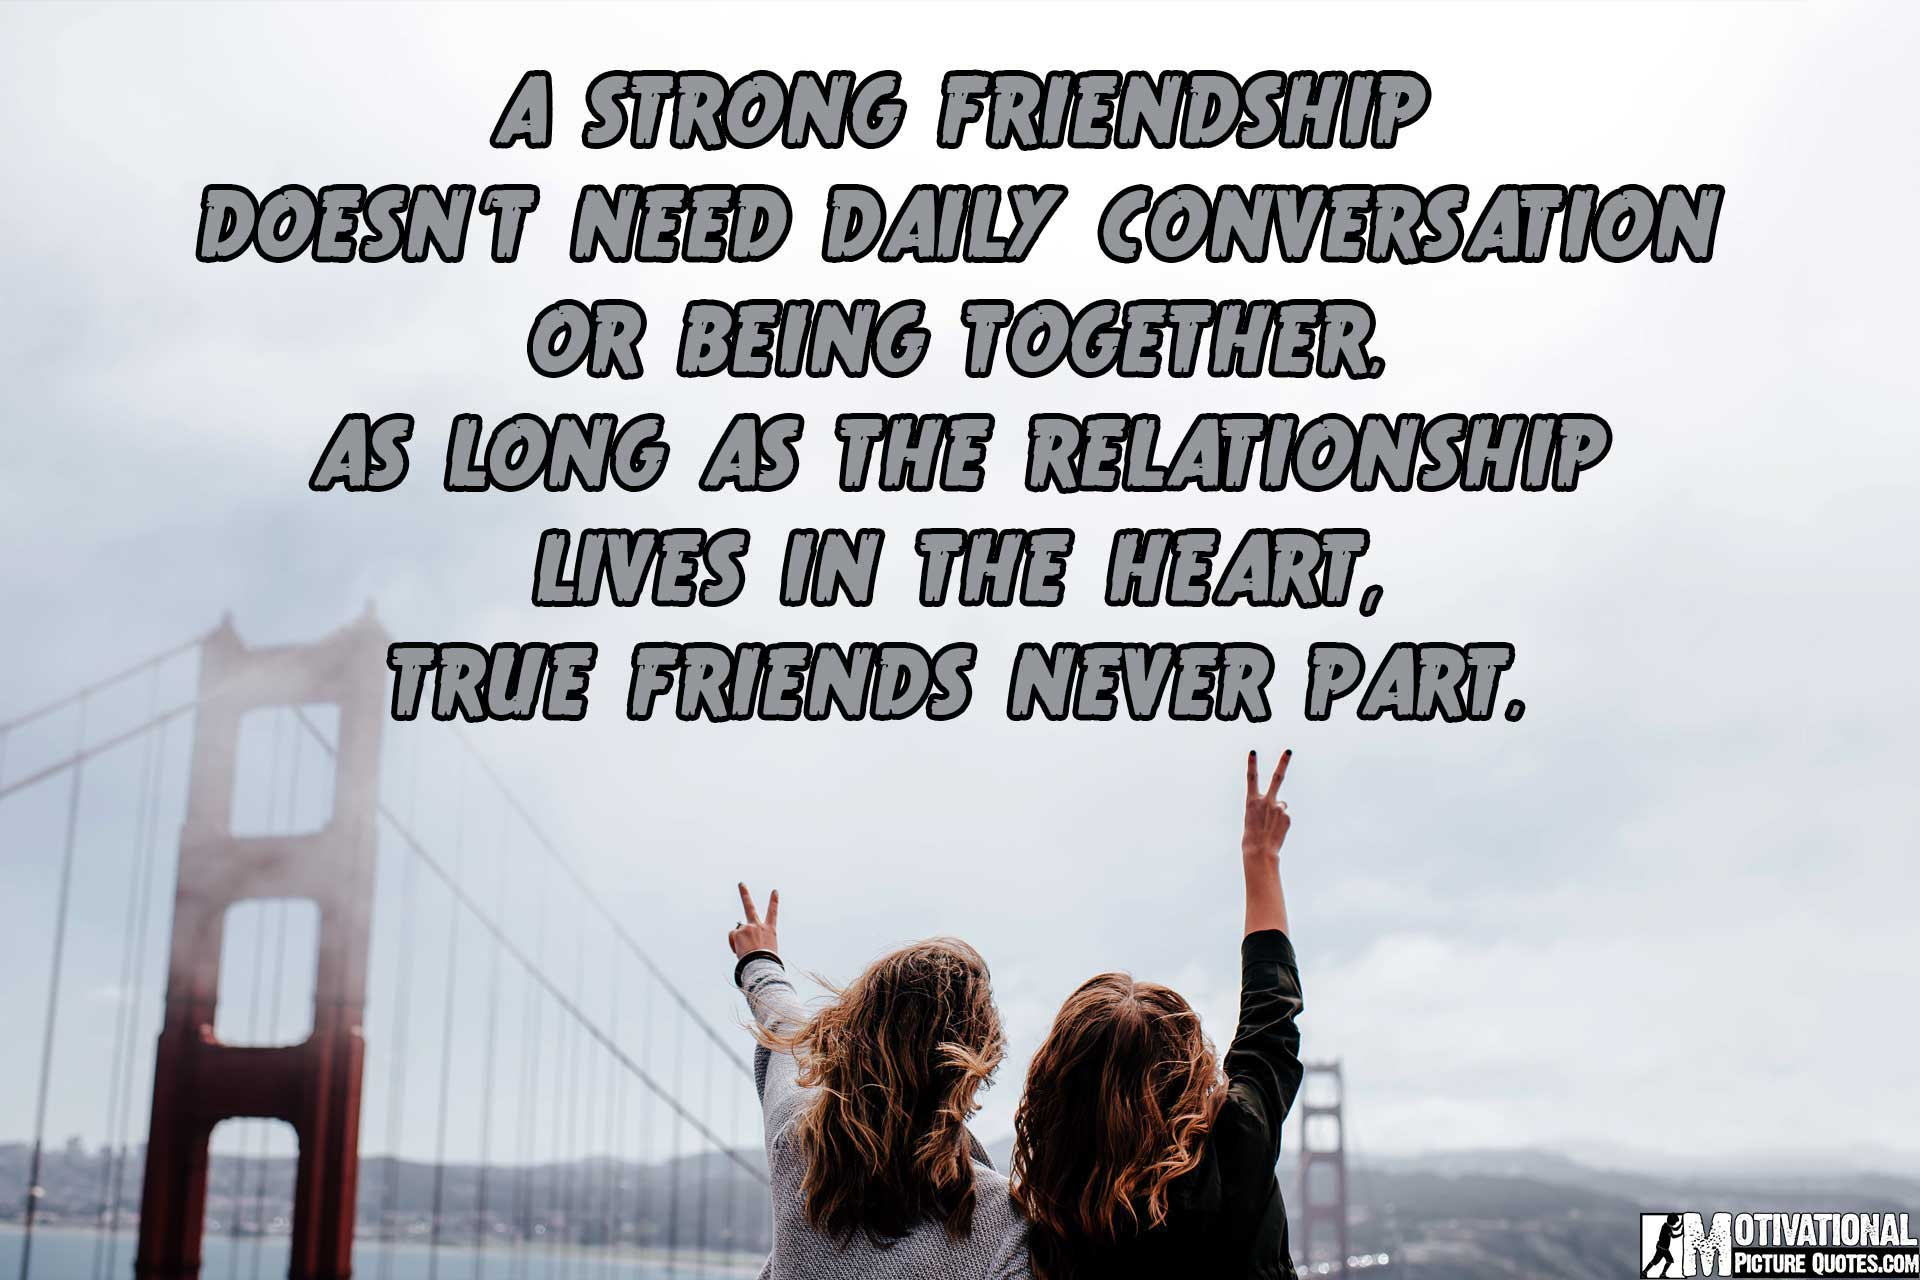 Wise Quotes About Friendship 25 Inspirational Friendship Quotes Images  Free Download